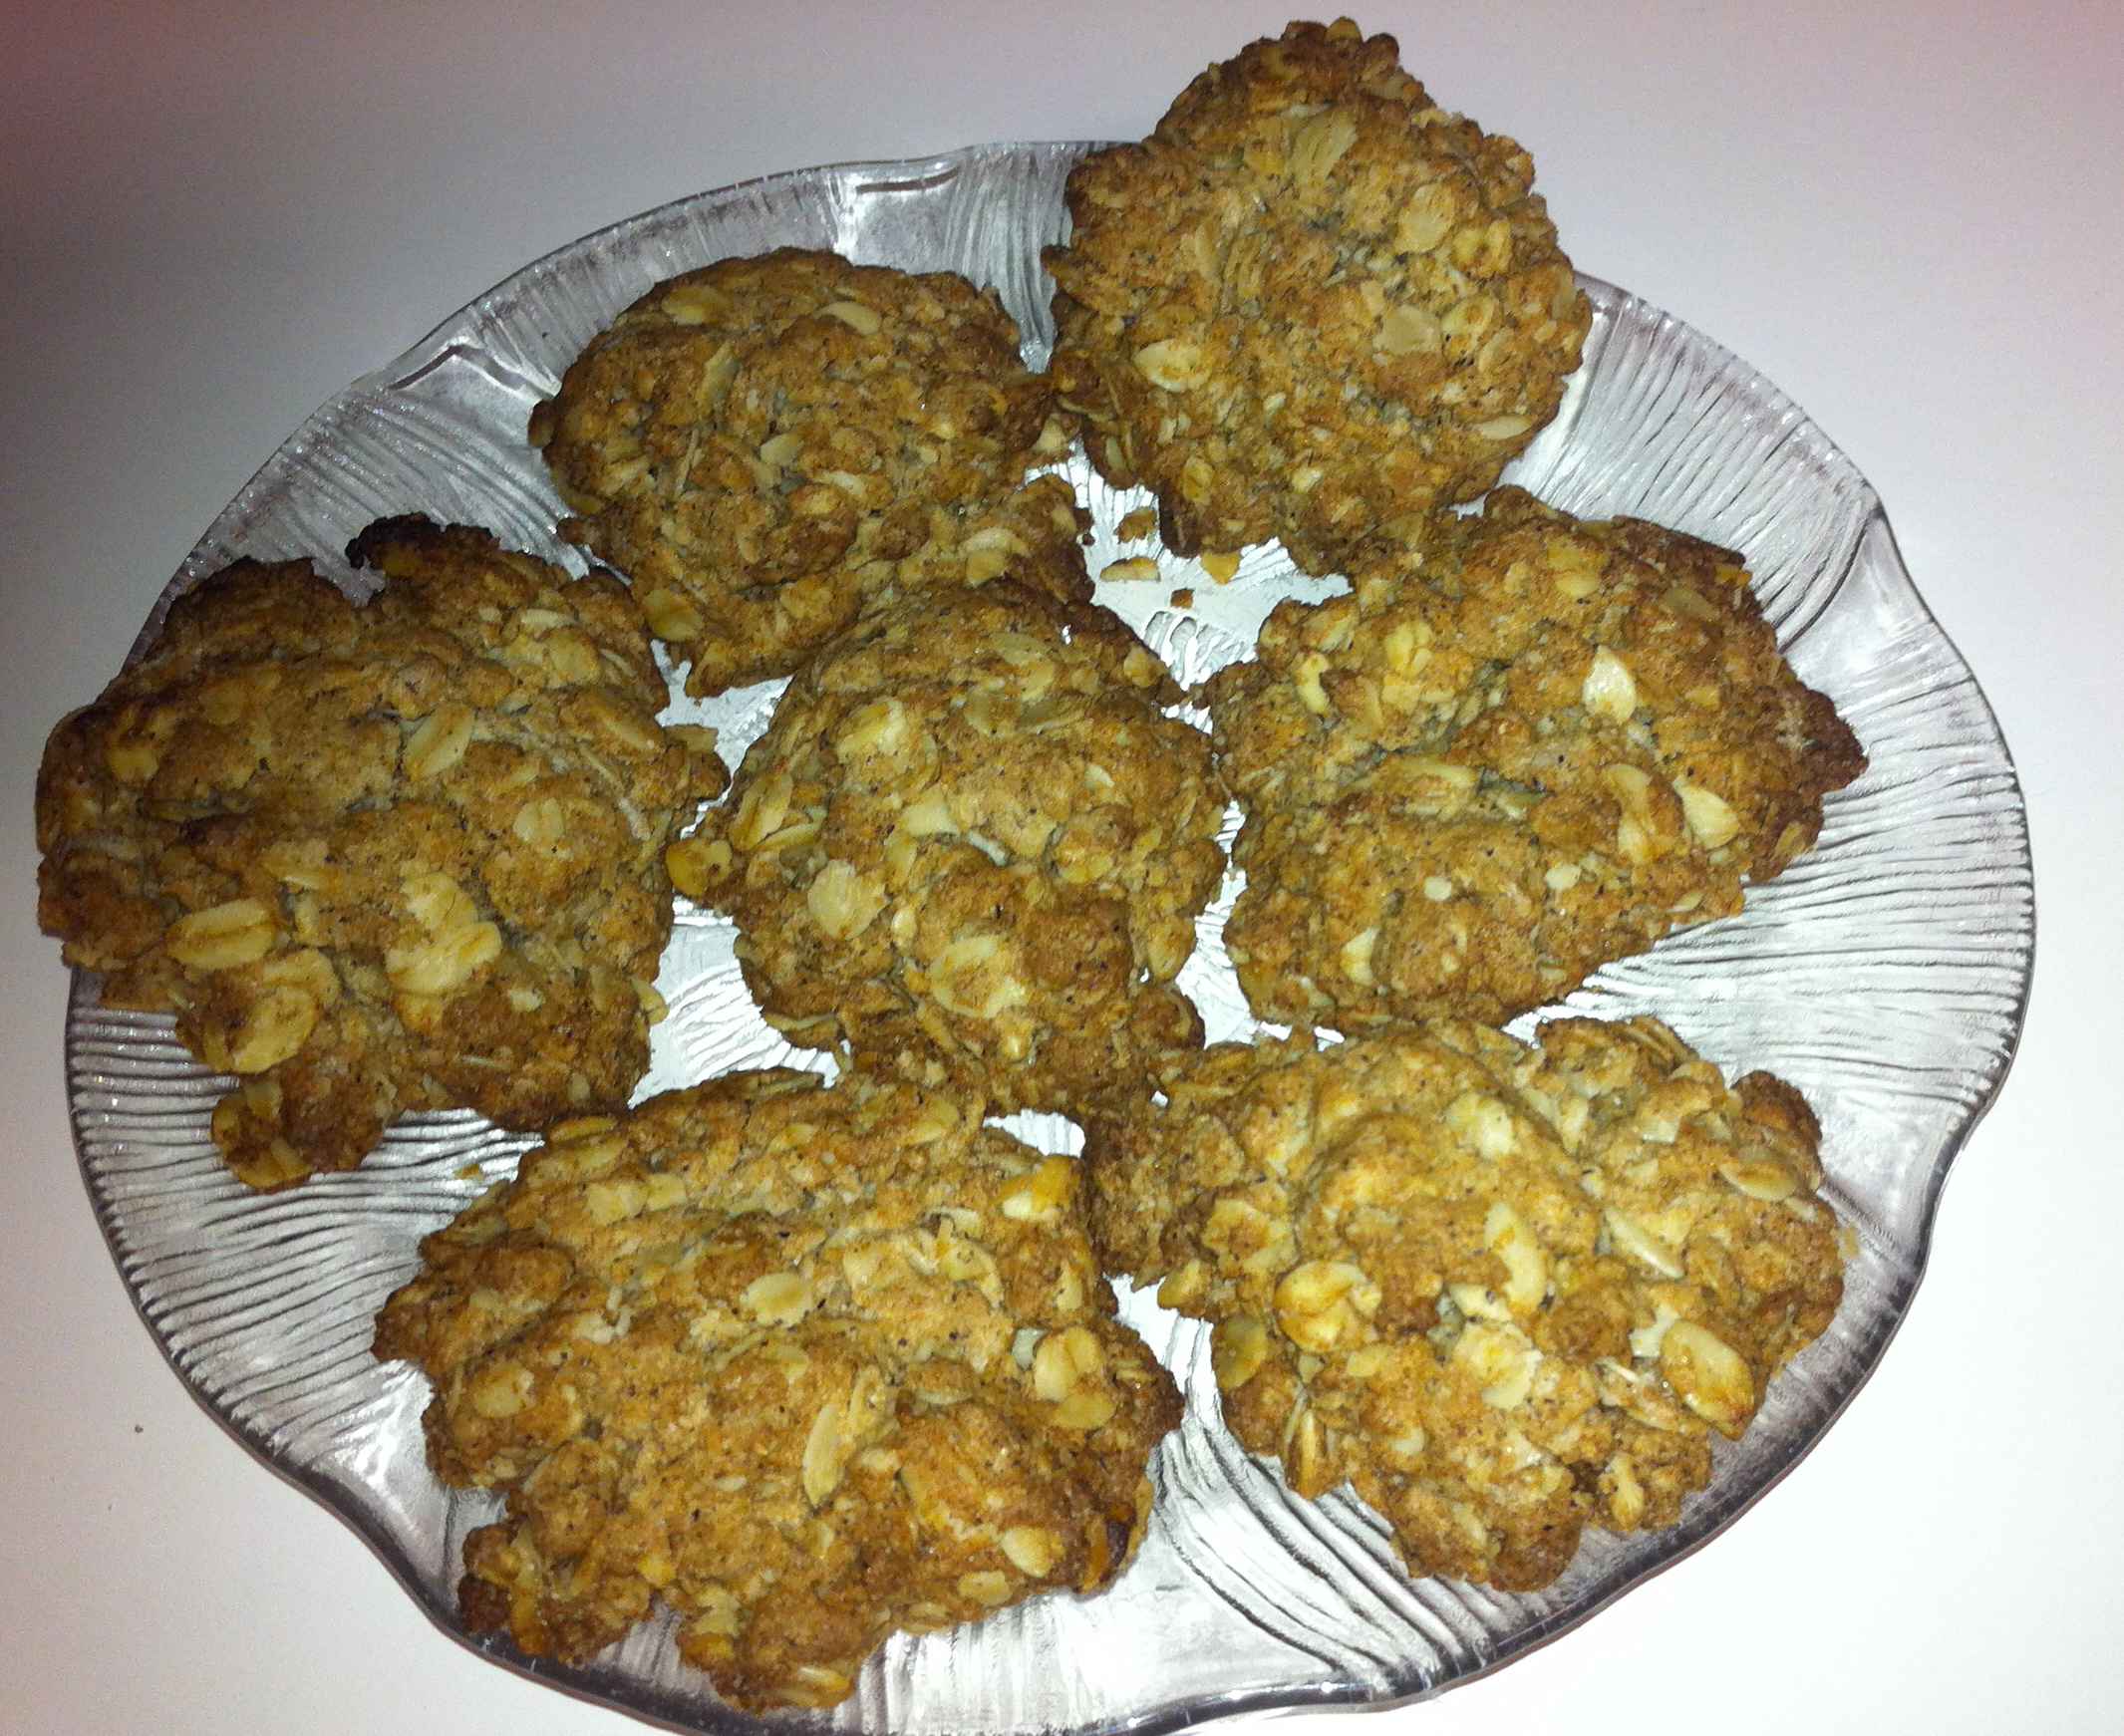 Rolled Oat Biscuits